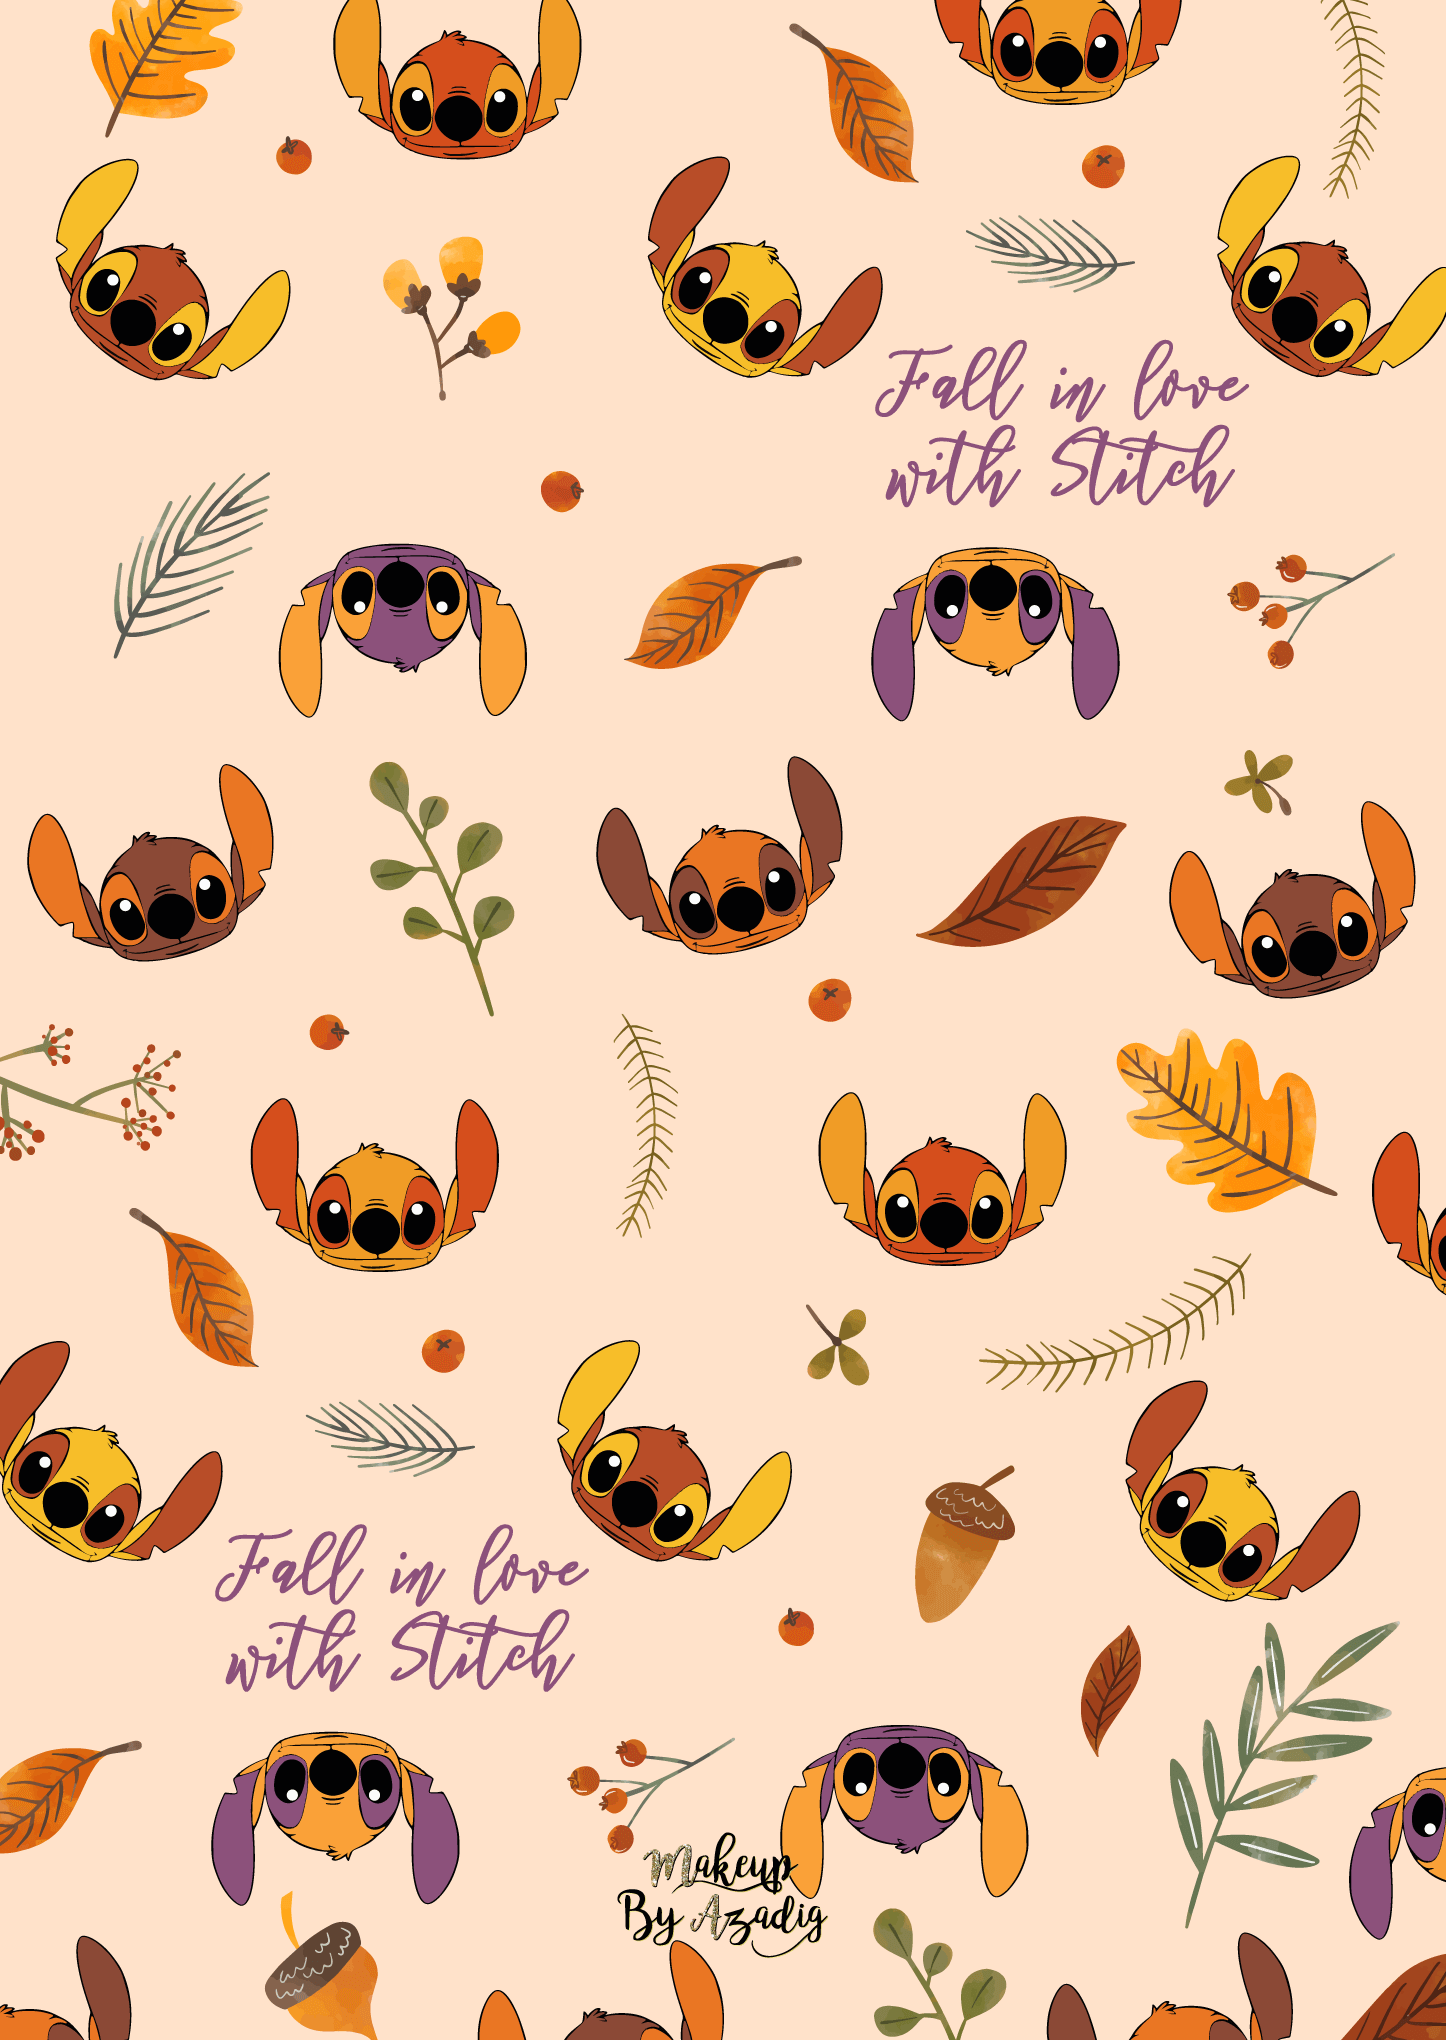 fond-decran-wallpaper-stitch-autumn-automne-fallinlove-disney-ipad-tablette-apple-makeupbyazadig-tendance